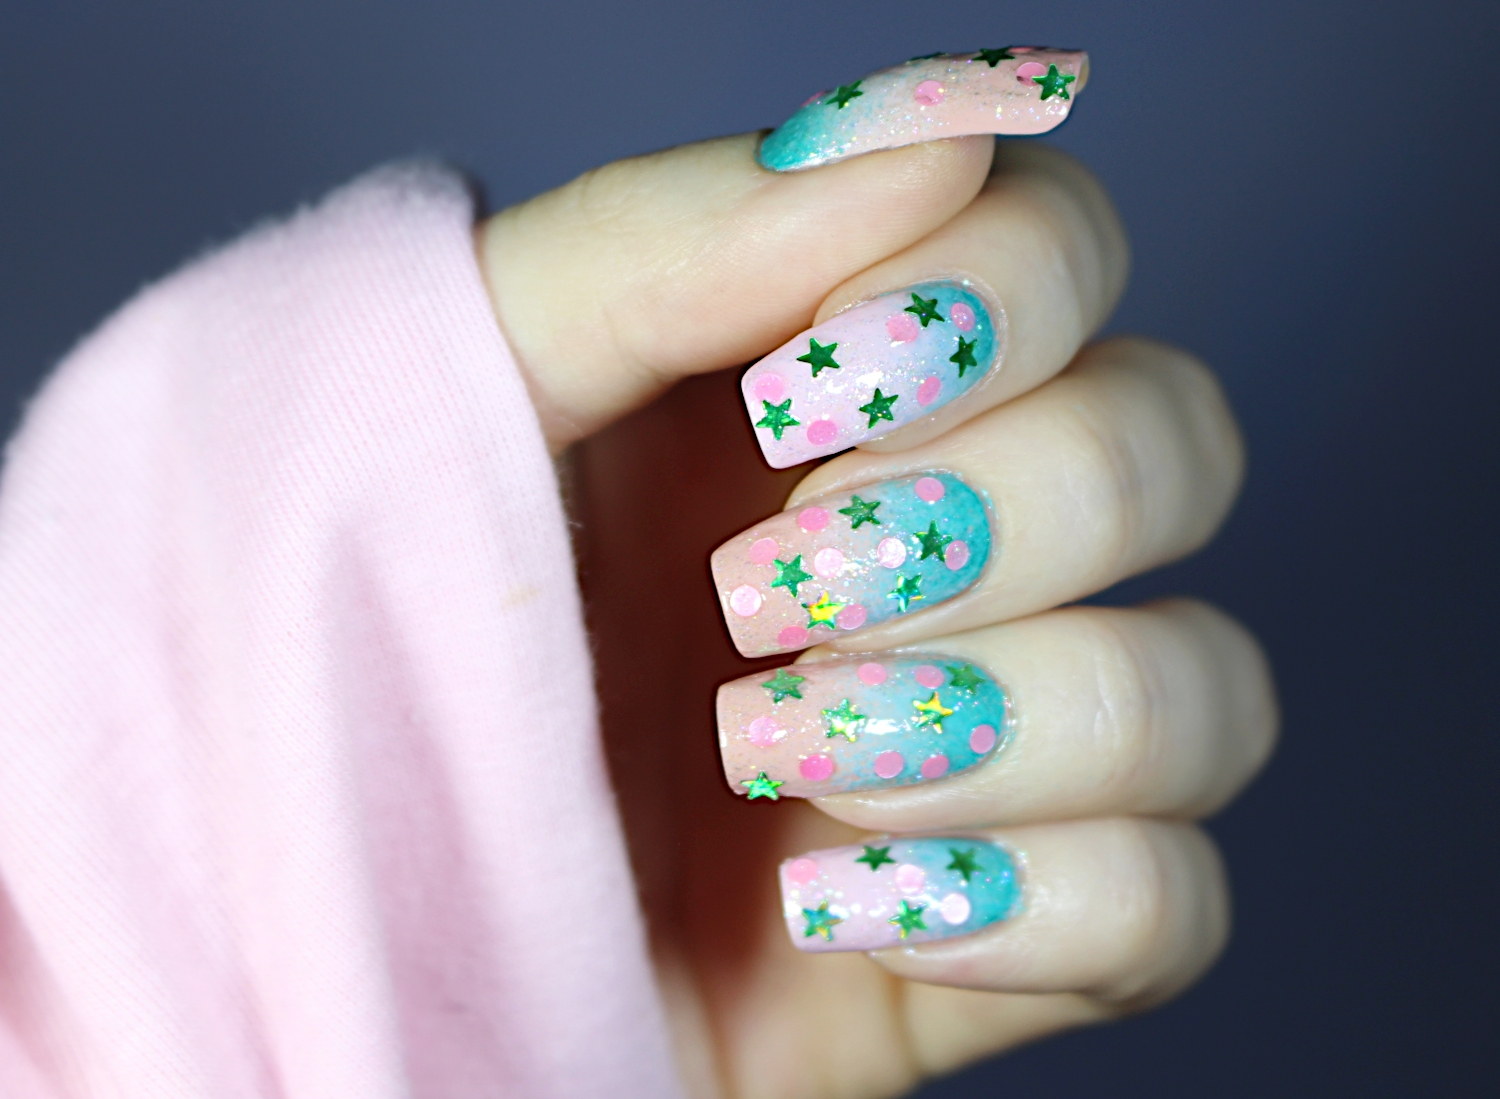 MERMAID K-POP NAILS: K-BEAUTY INSPIRED NAIL DESIGN